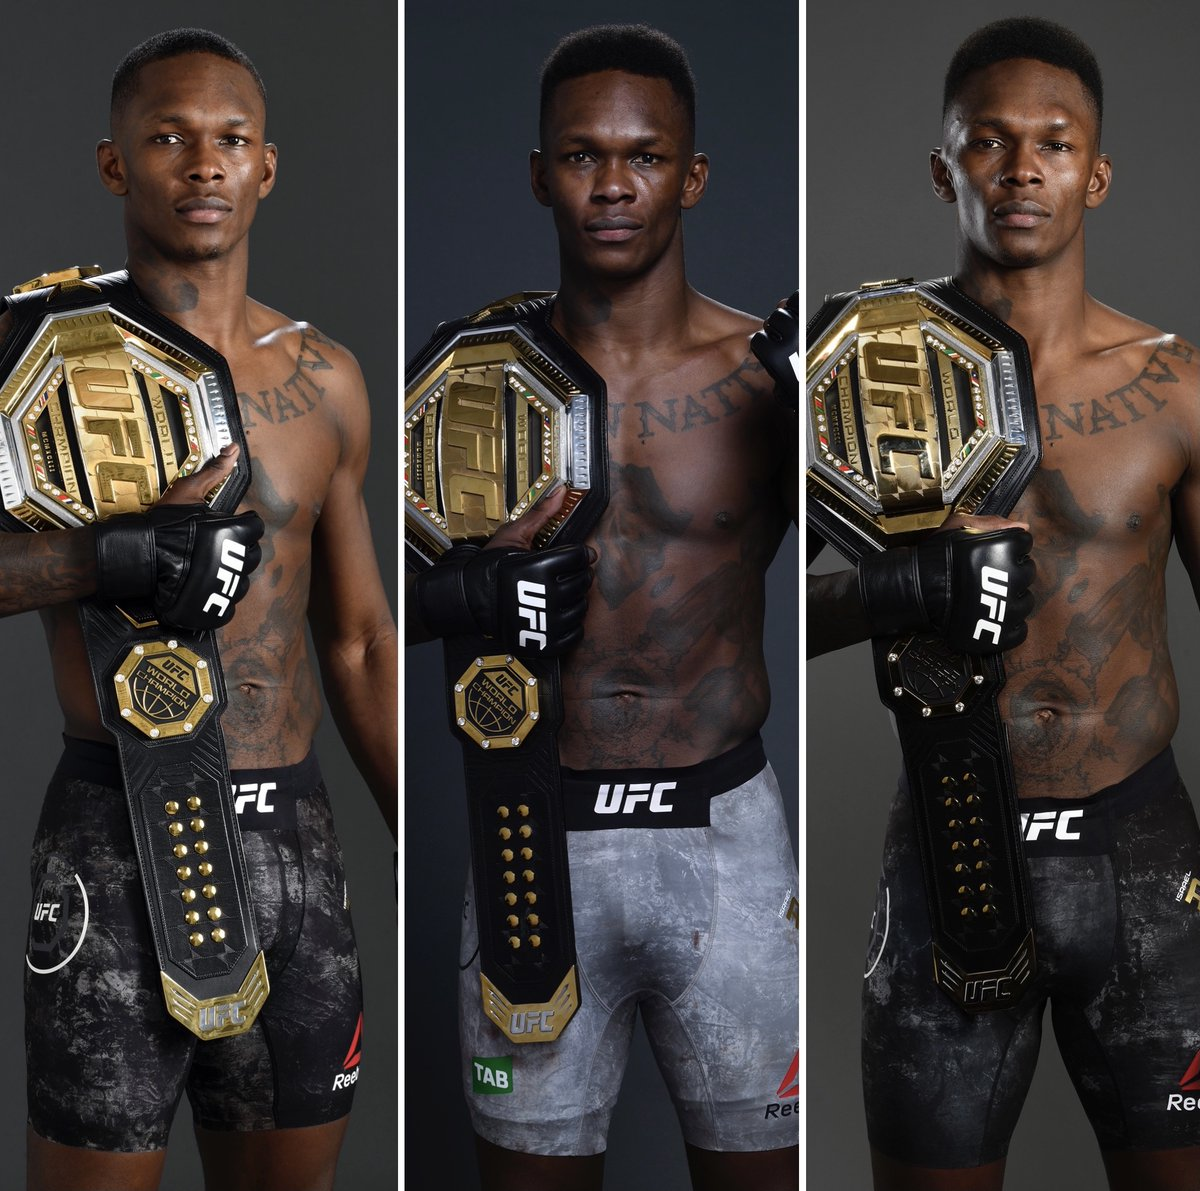 🏆 @Stylebender barely appeared touched after his last three fights. #UFC259